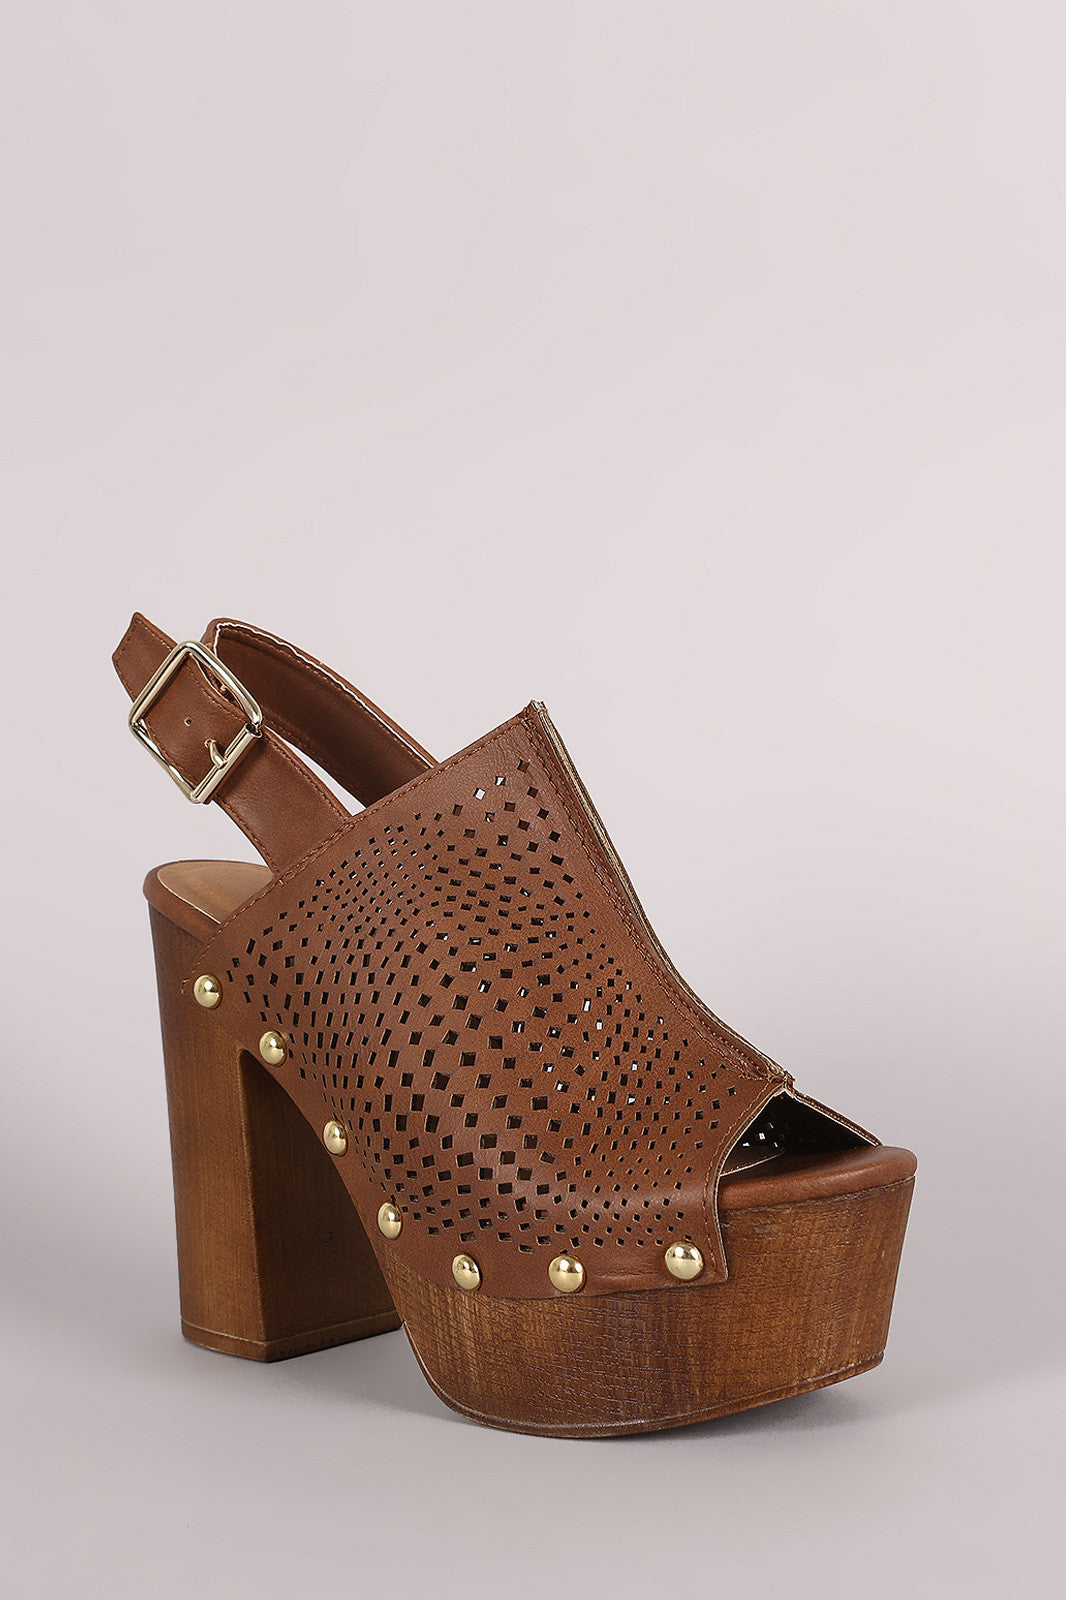 Qupid Perforated Slingback Studded Chunky Platform Mule Heel - Thick 'N' Curvy Shop - 2